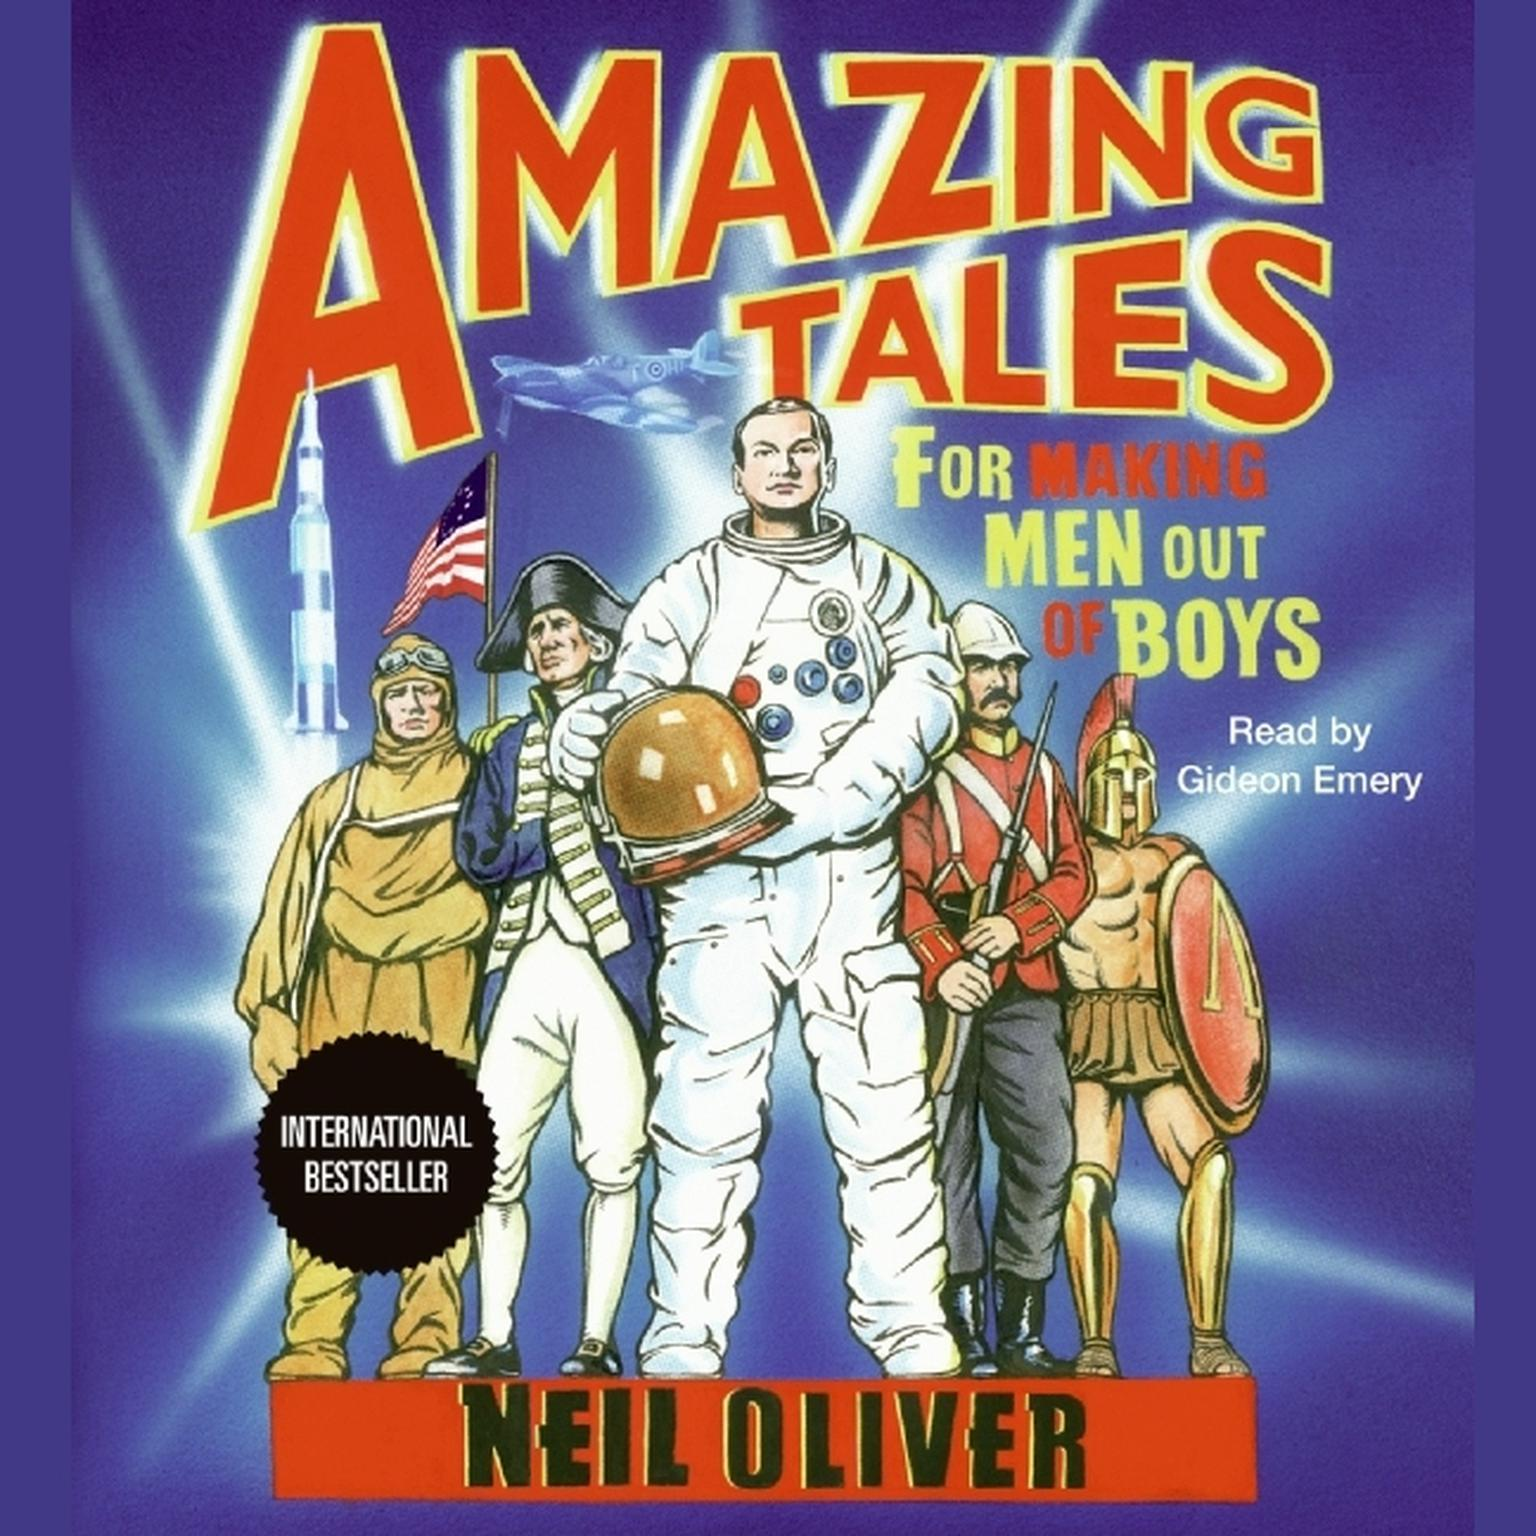 Printable Amazing Tales for Making Men Out of Boys Audiobook Cover Art